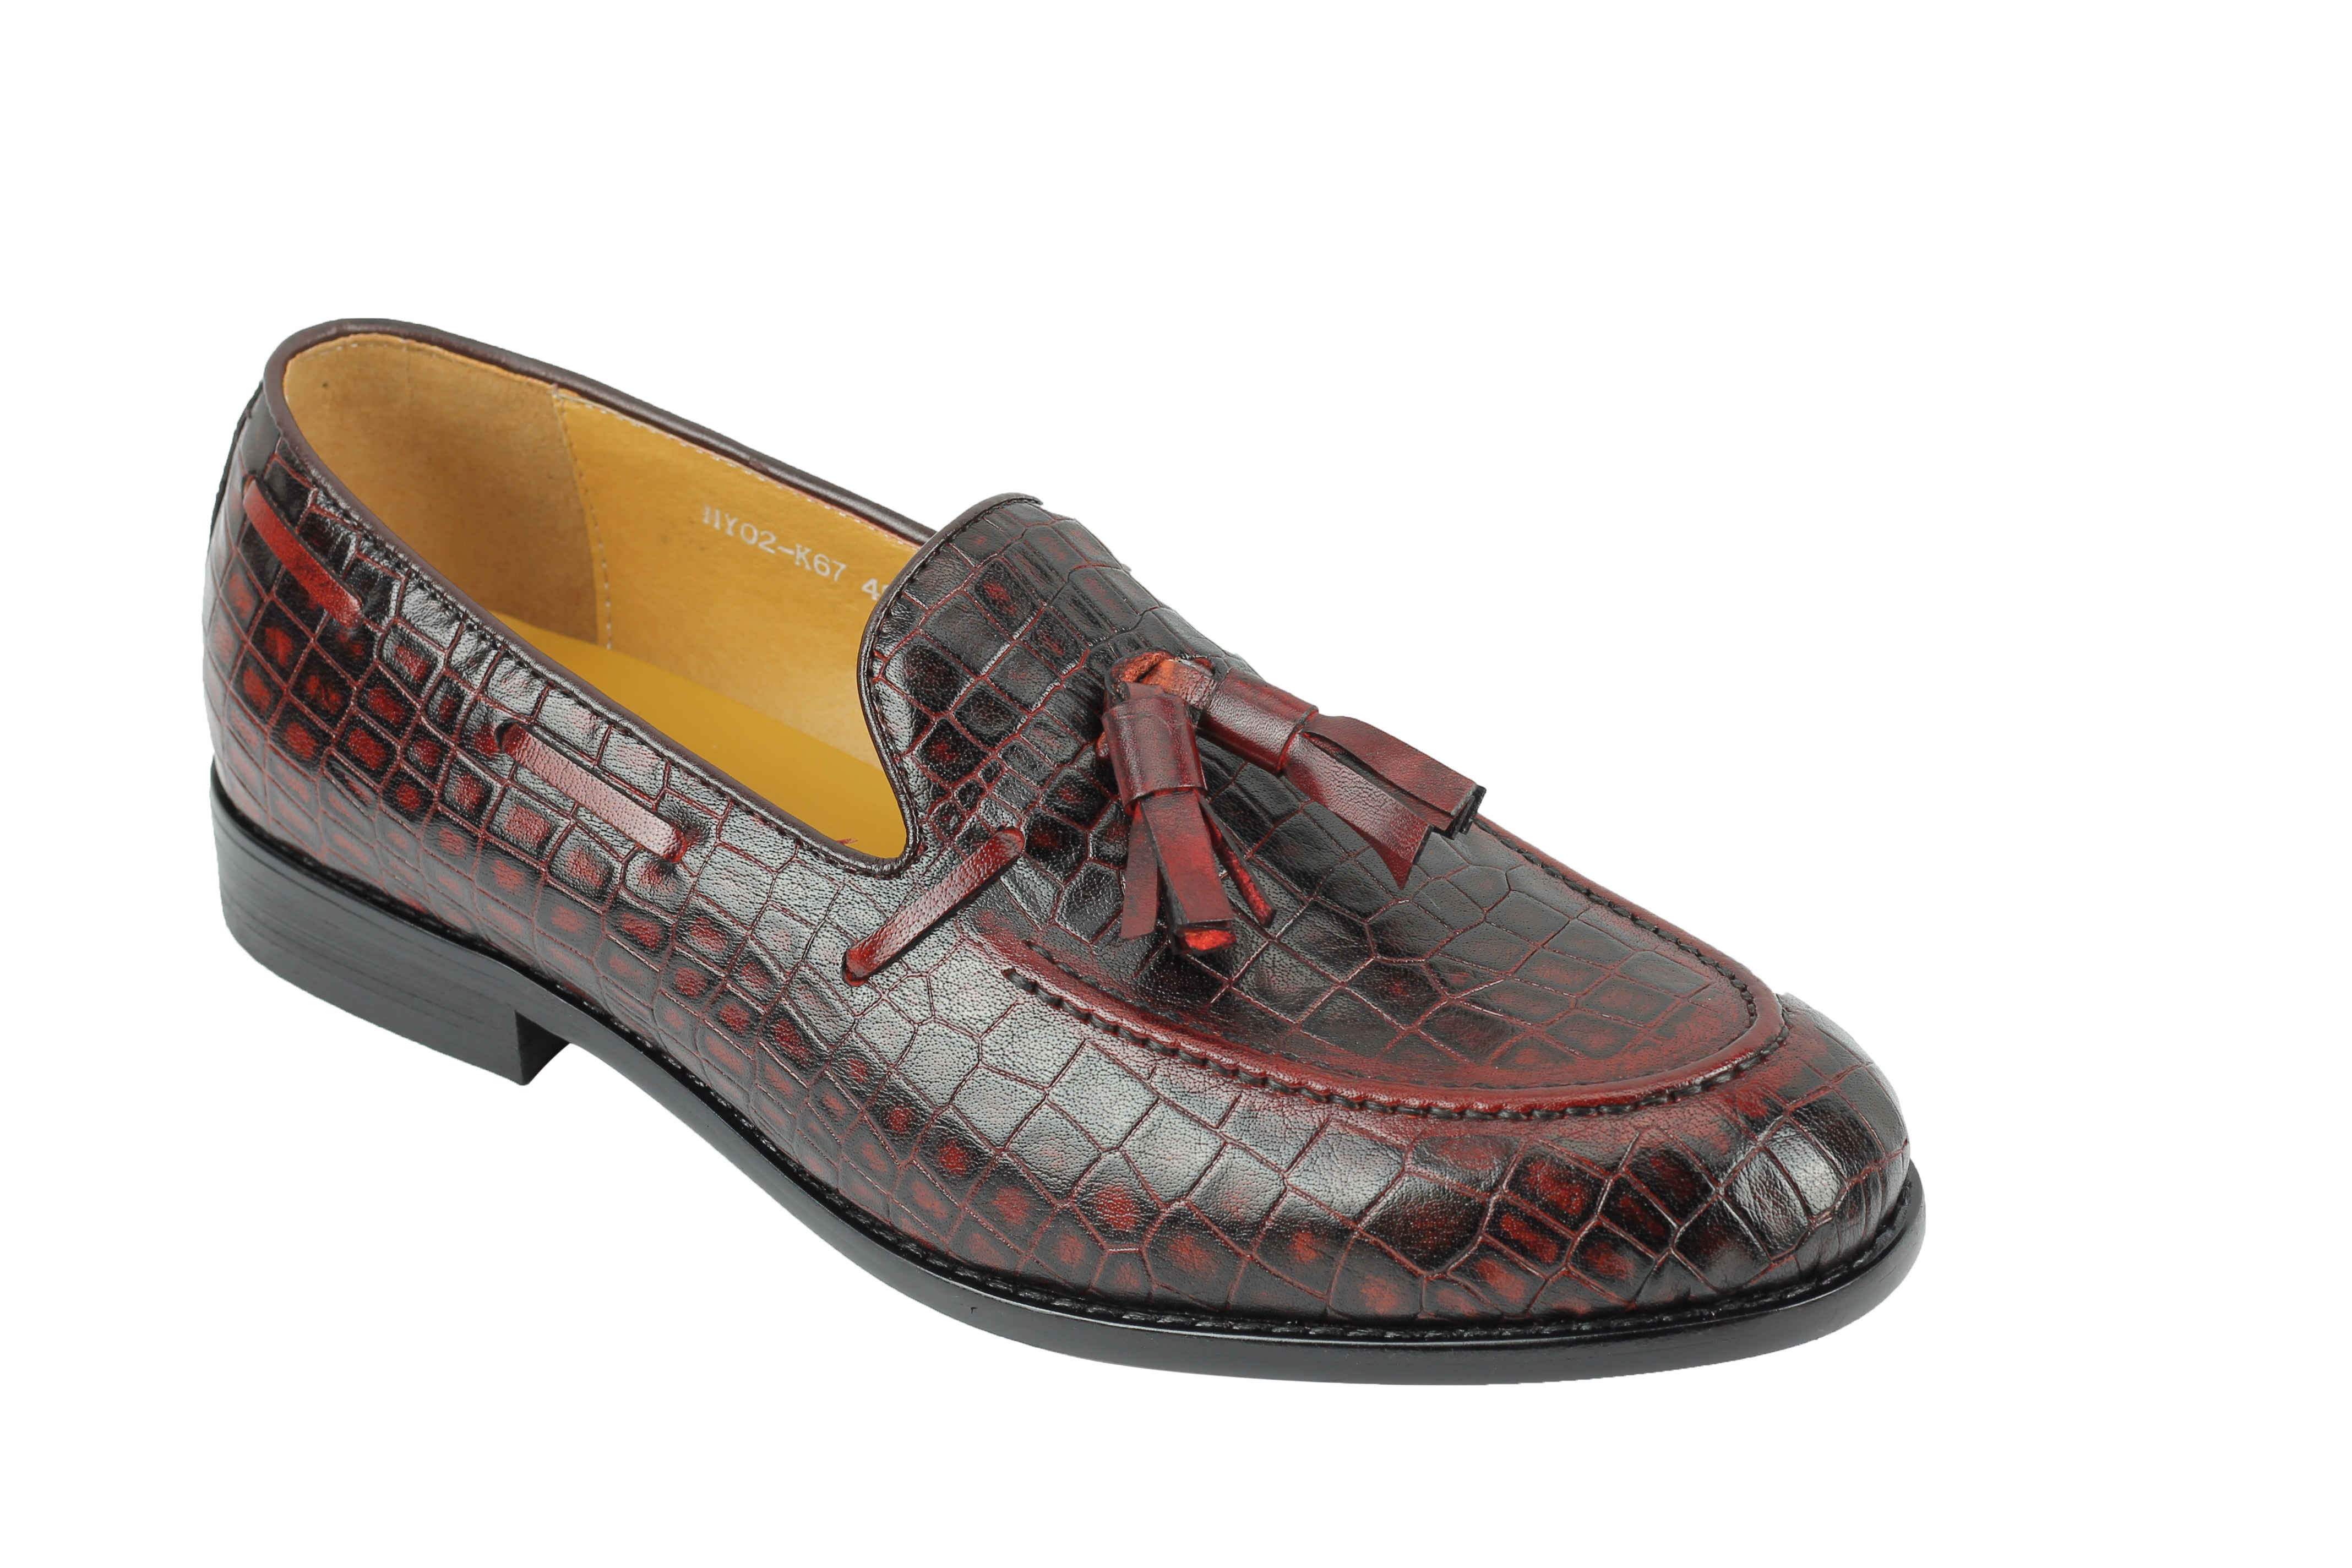 Herren Real Leder Tassel Loafers Vintage Smart Casual Retro MOD Schuhes UK Größe 4eb271